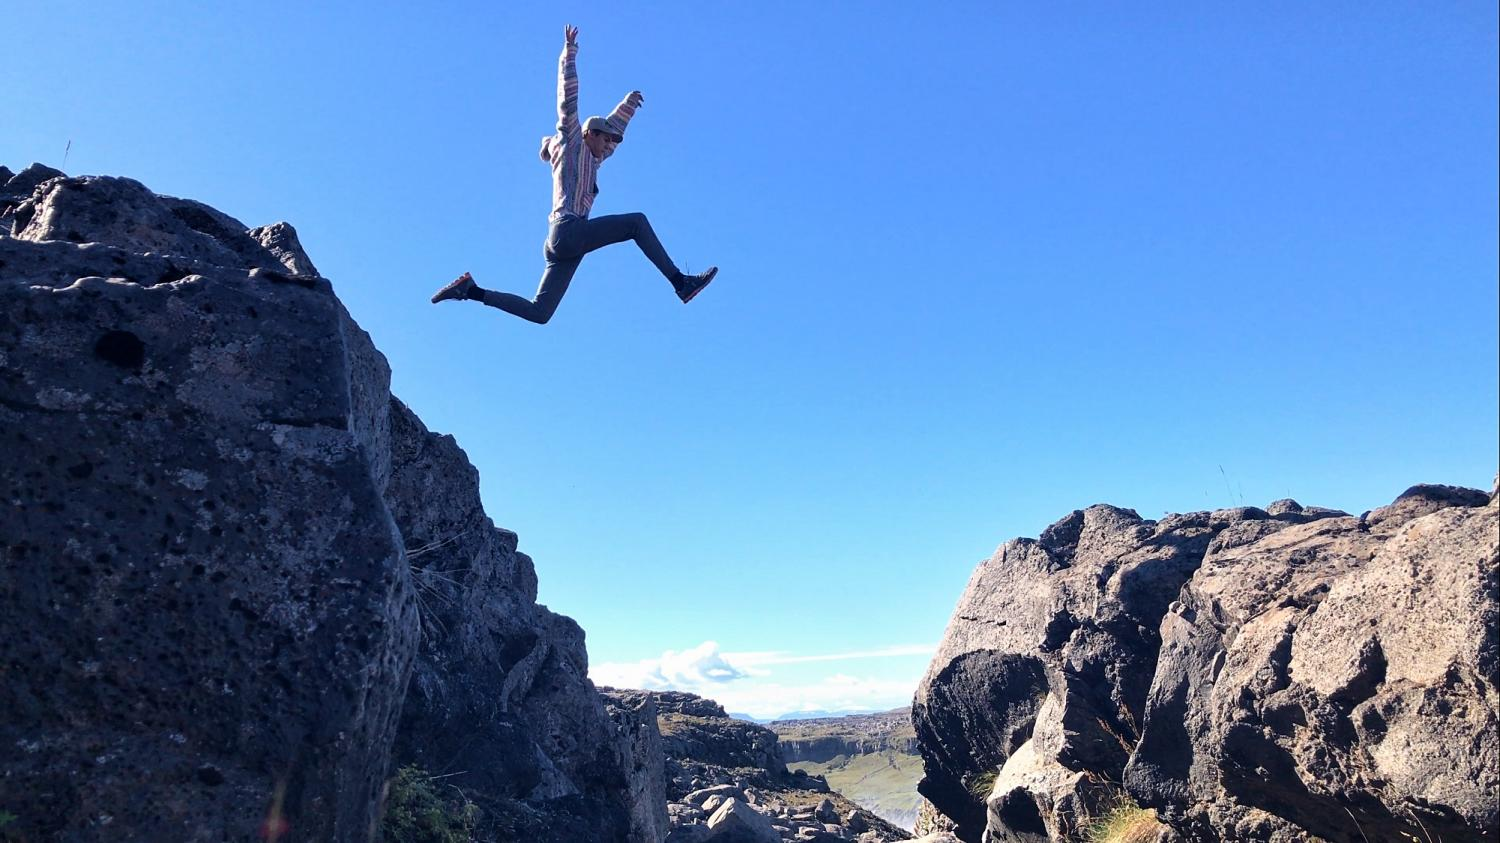 Ryan Talbot shows off his parkour skills in the western United States